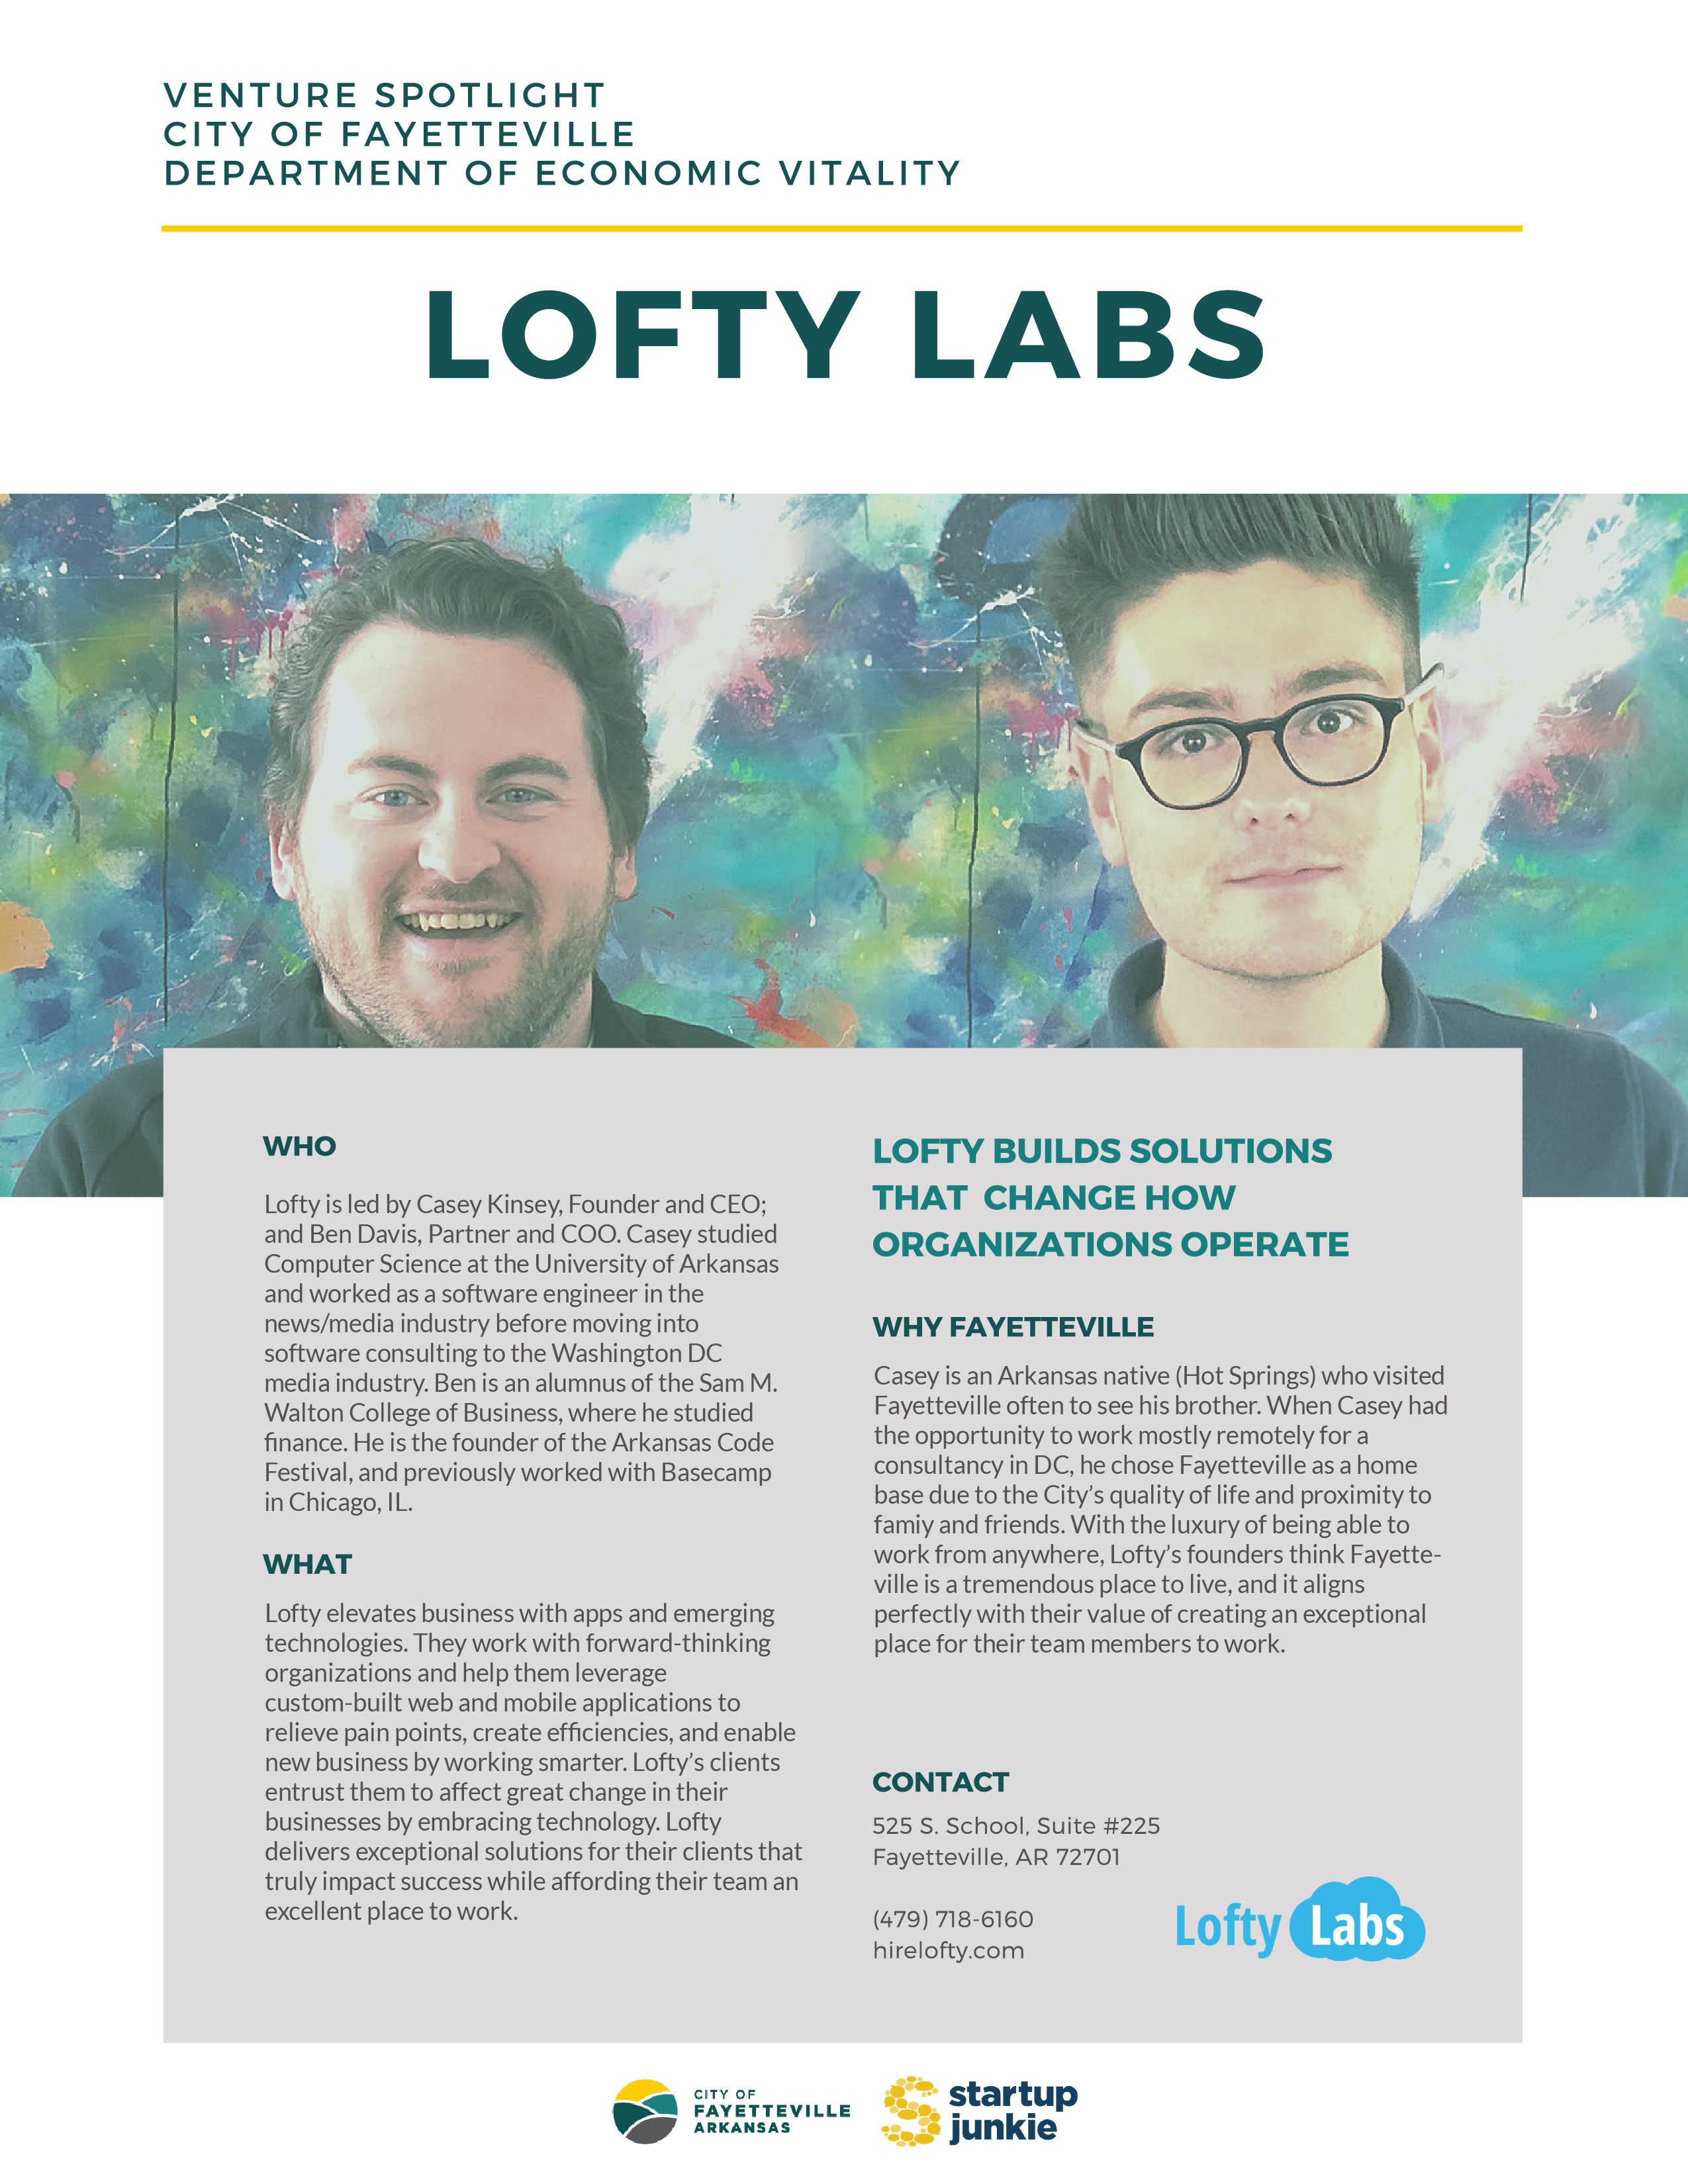 Lofty Labs - Venture Spotlight